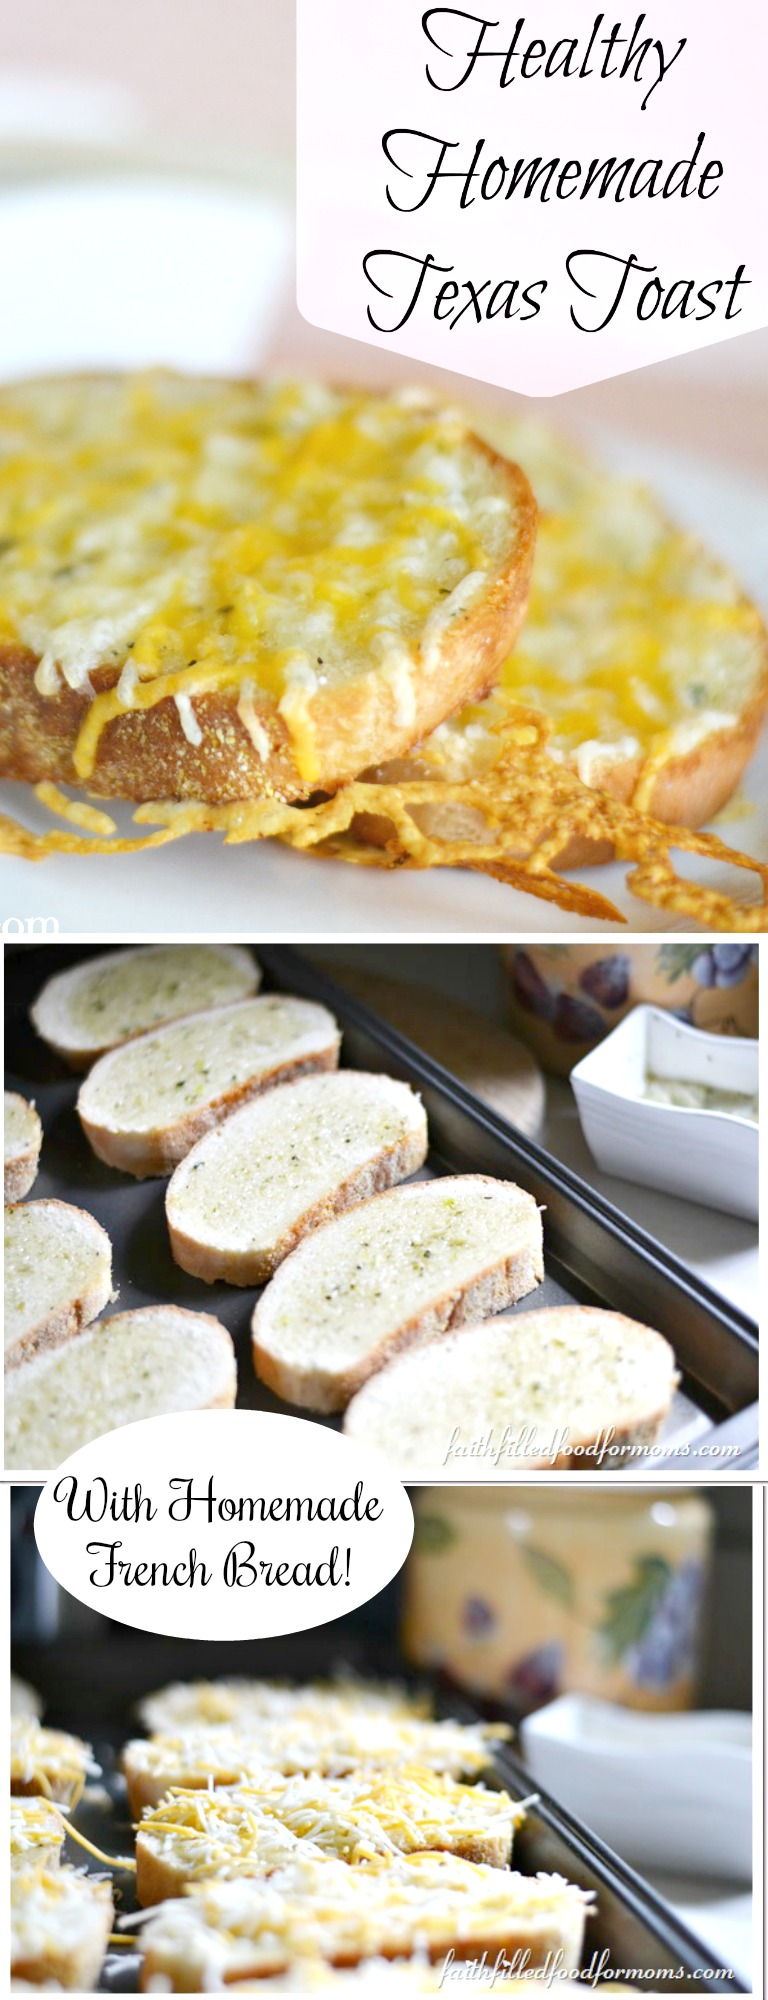 Healthy Homemade Texas Toast